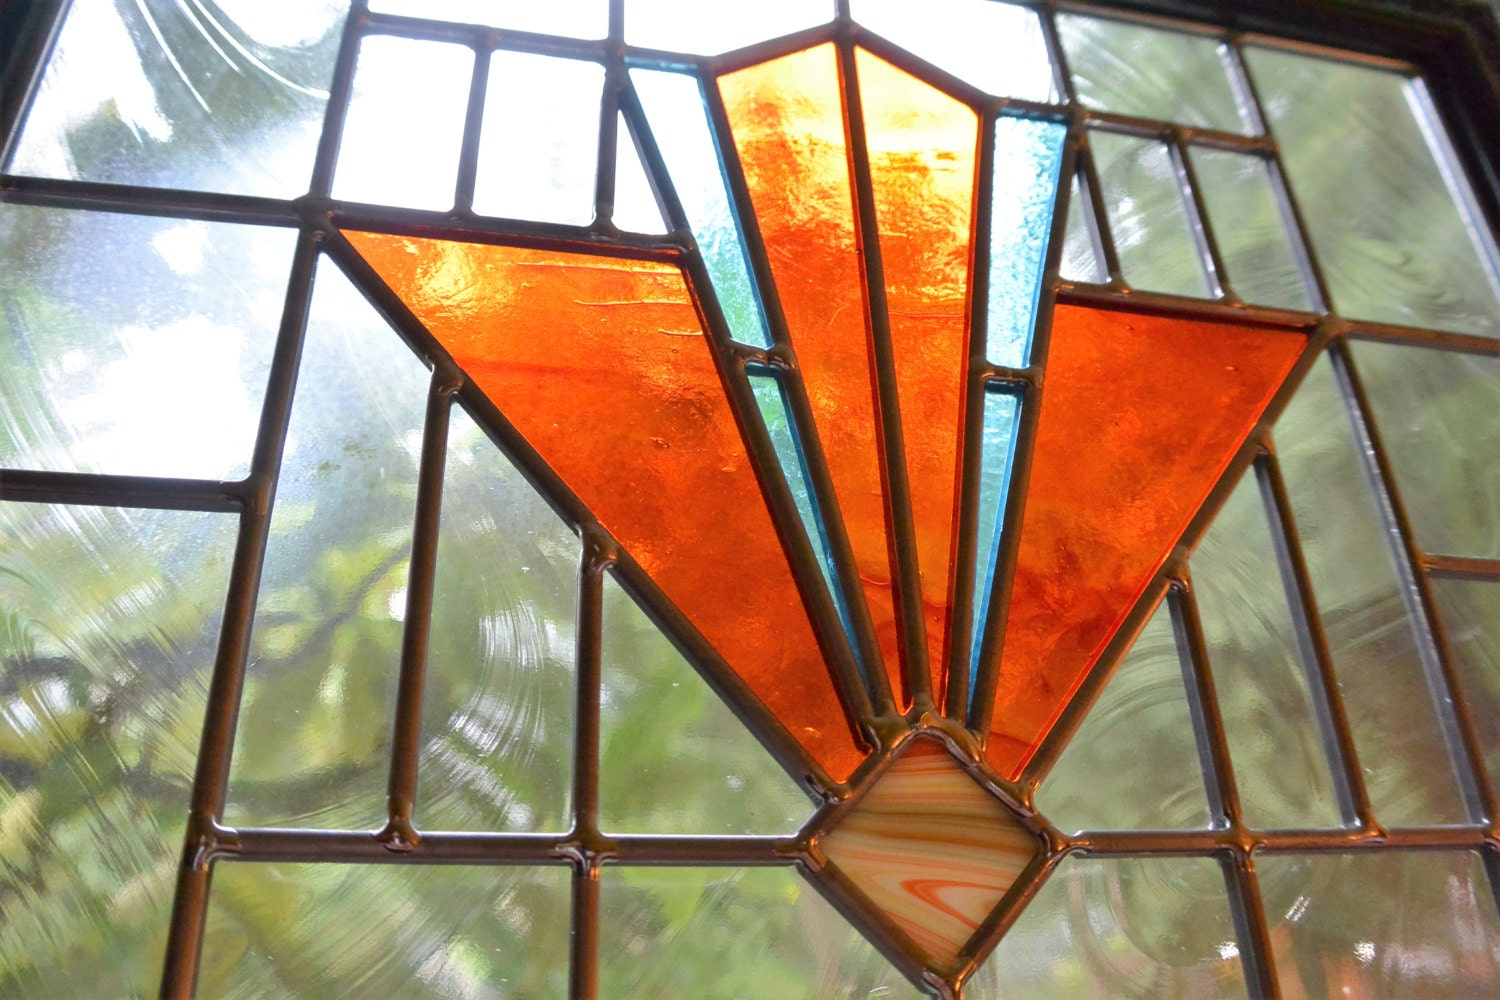 stained glass framed panel deco window in turquoise and